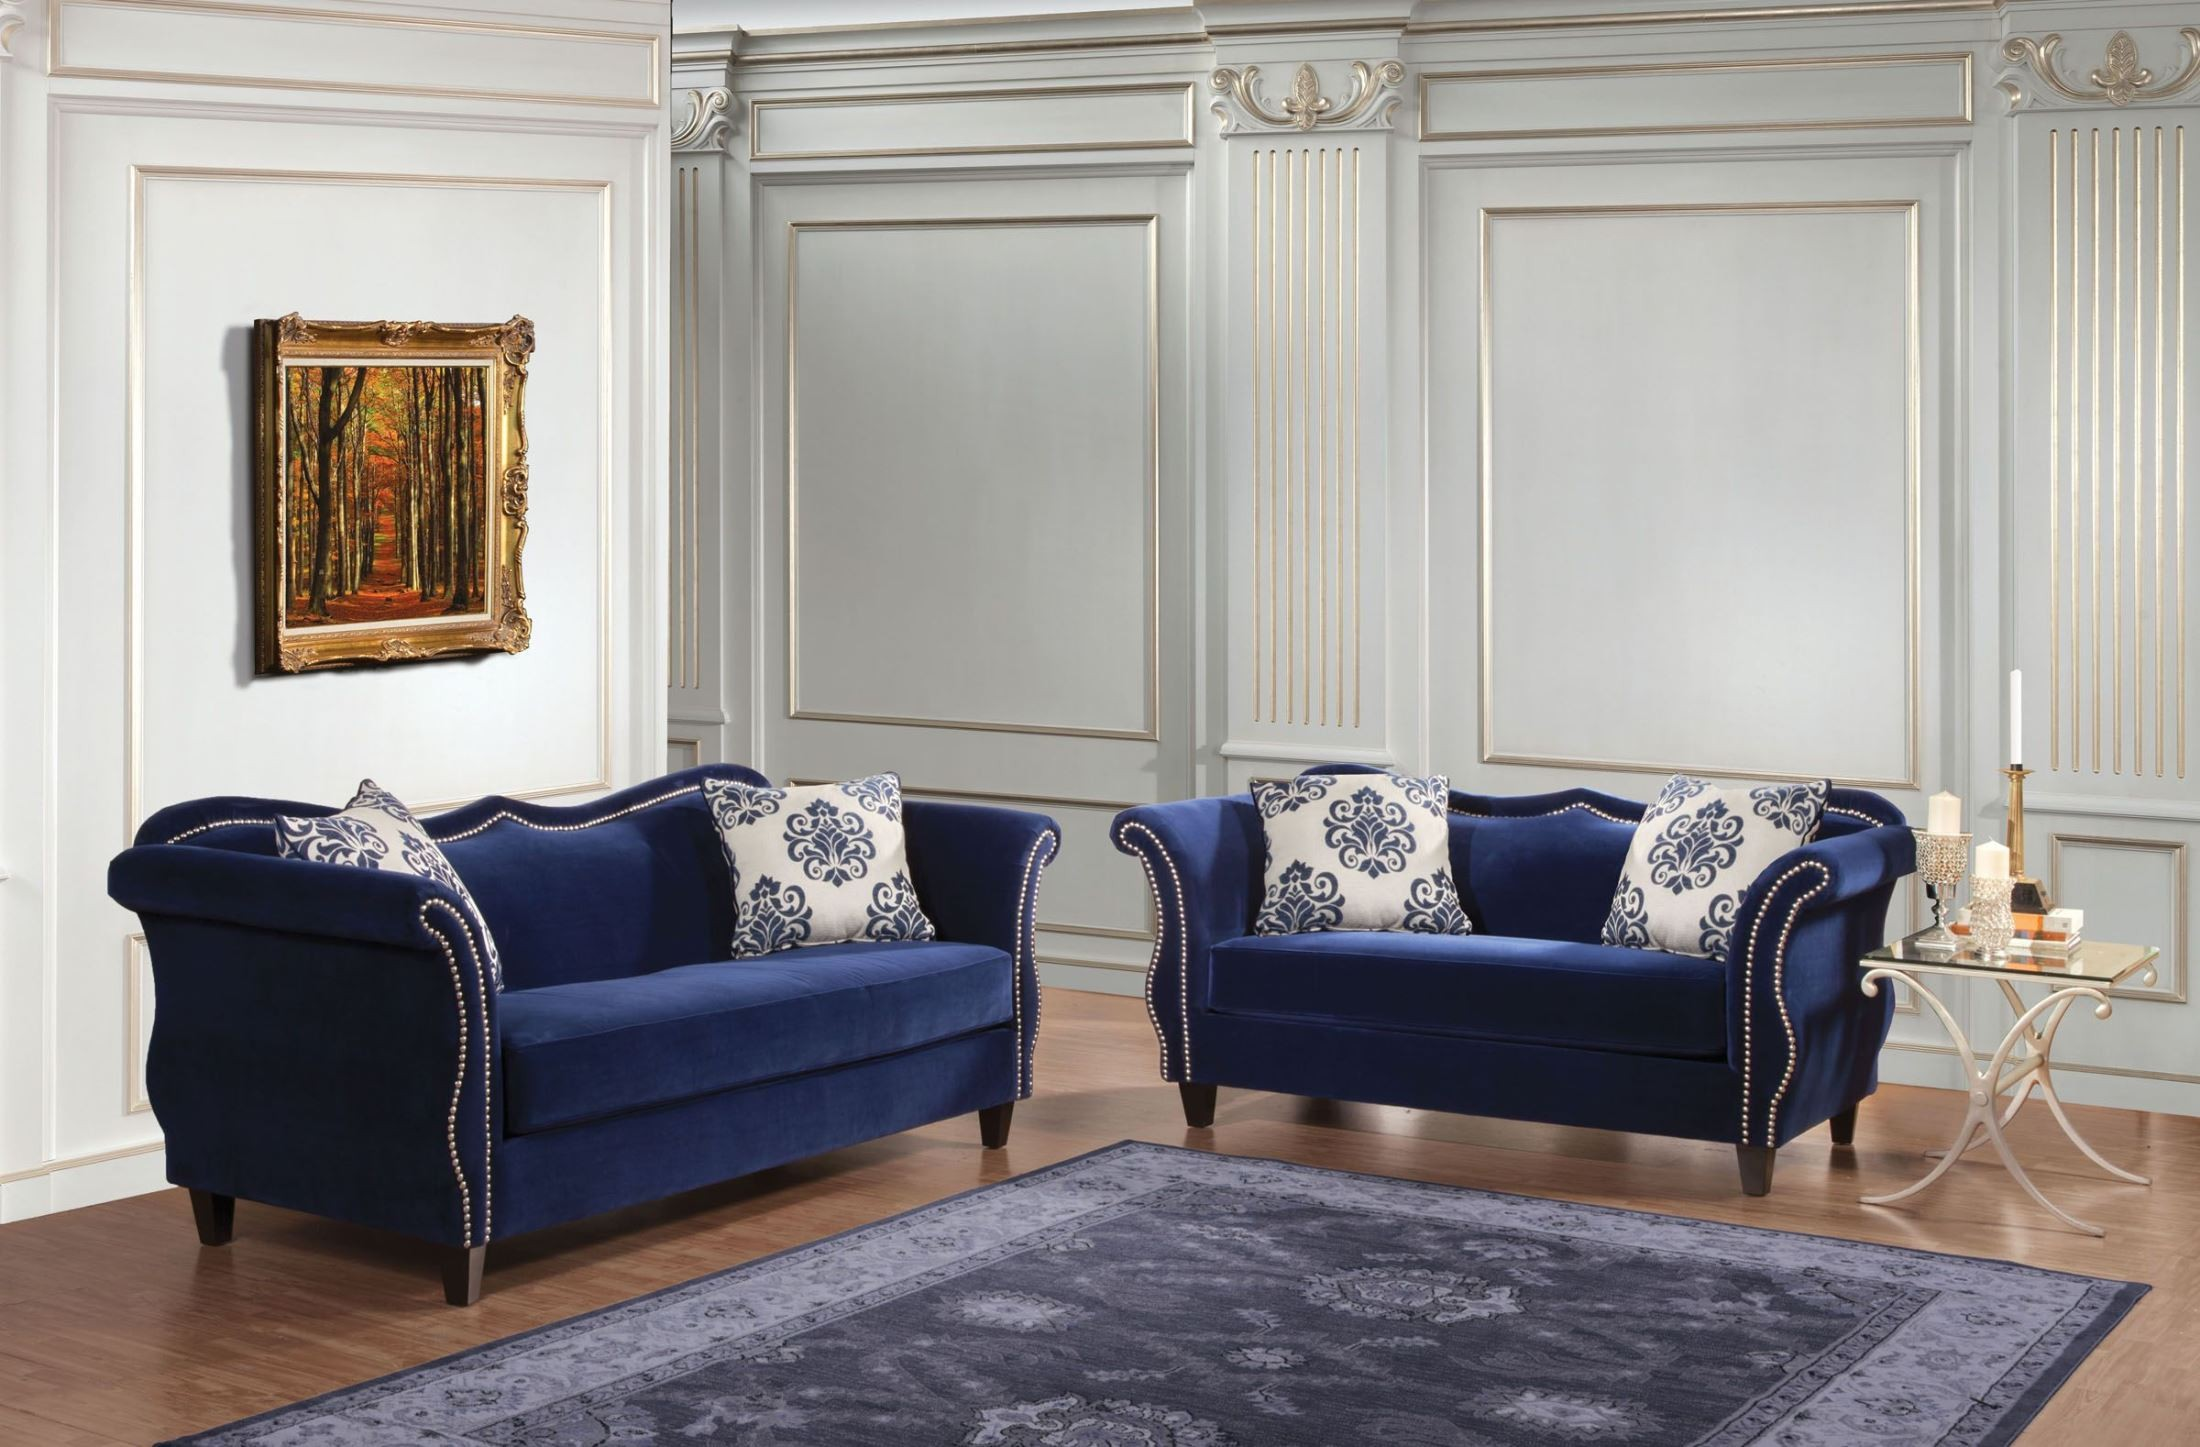 Zaffiro royal blue living room set sm2231 sf furniture for Living room sets